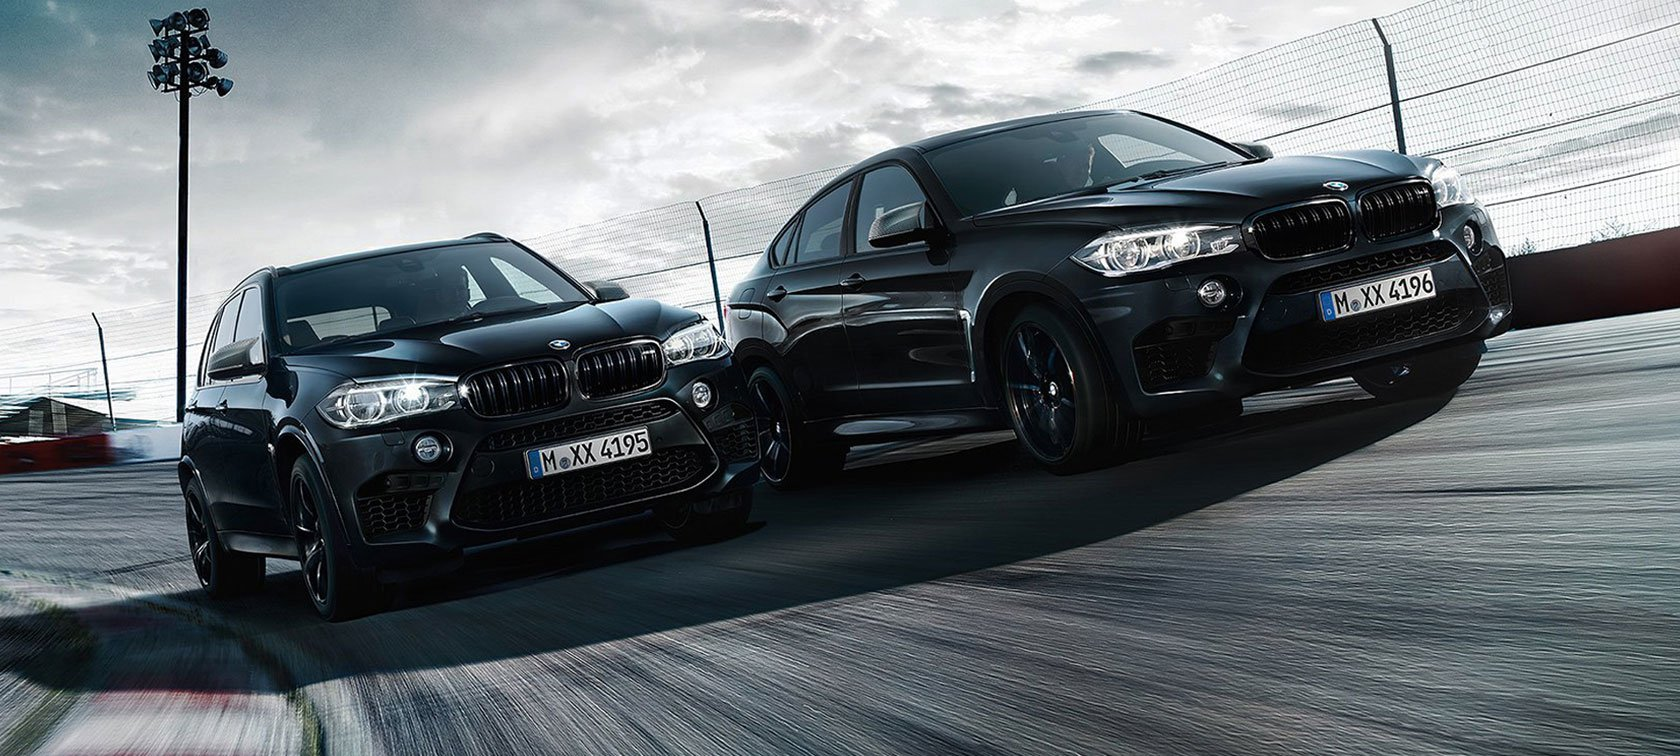 Bmw X6m Black Www Pixshark Com Images Galleries With A Bite